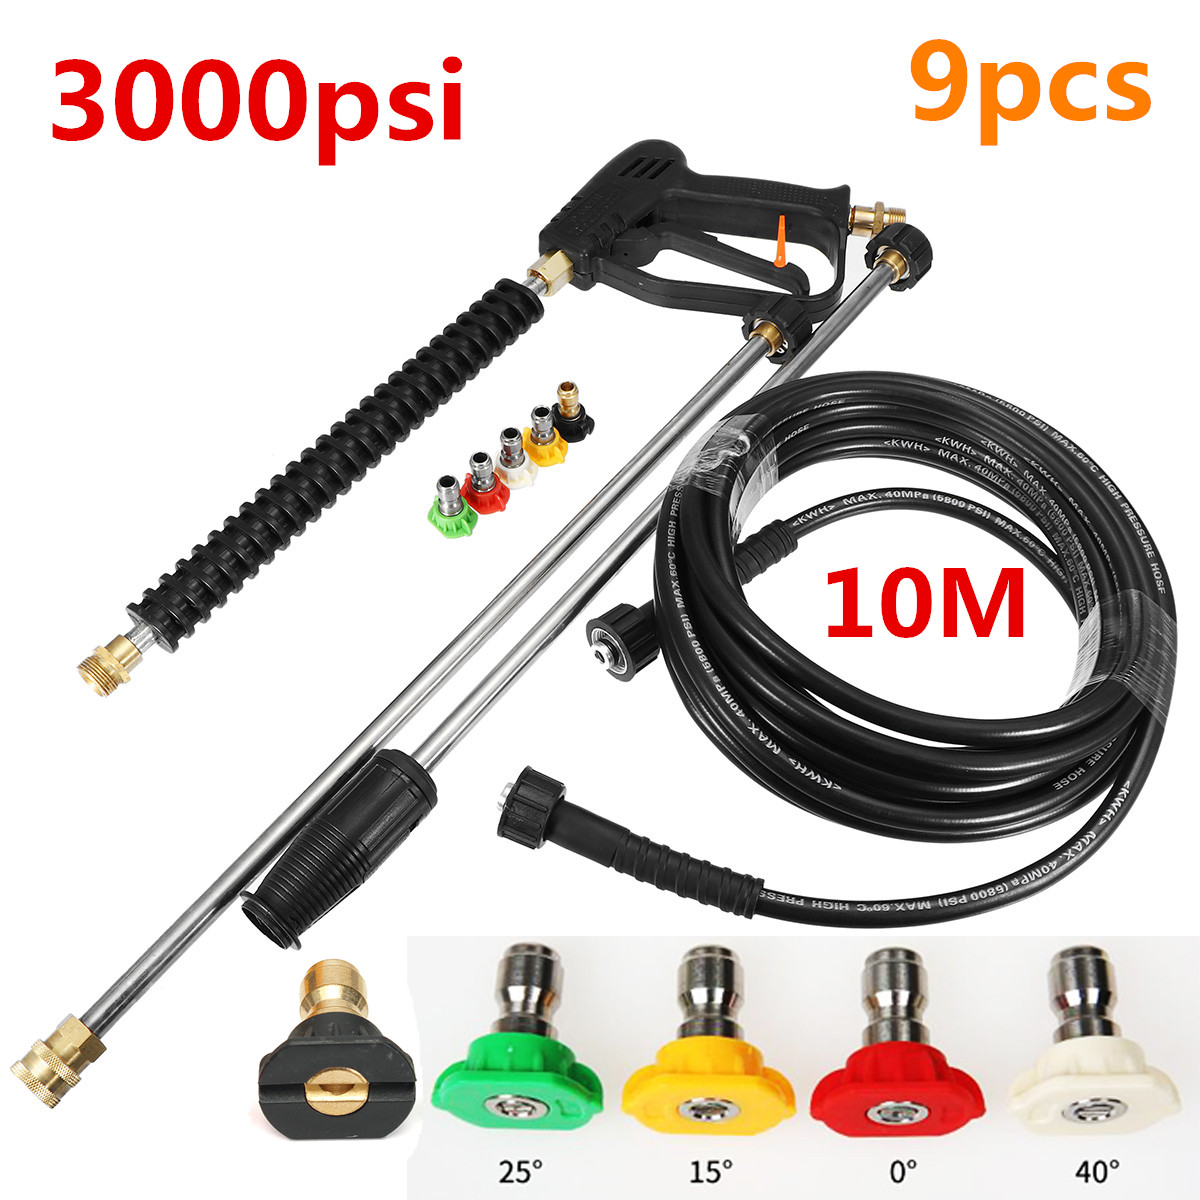 Car High Pressure Washer Water Gu n Power Spray Nozzle 10m Wash Hose With Long Bent Pole Cleaning Tools Garden Car Washer Gu n metal hose nozzle high pressure water spray gun sprayer garden auto car washing